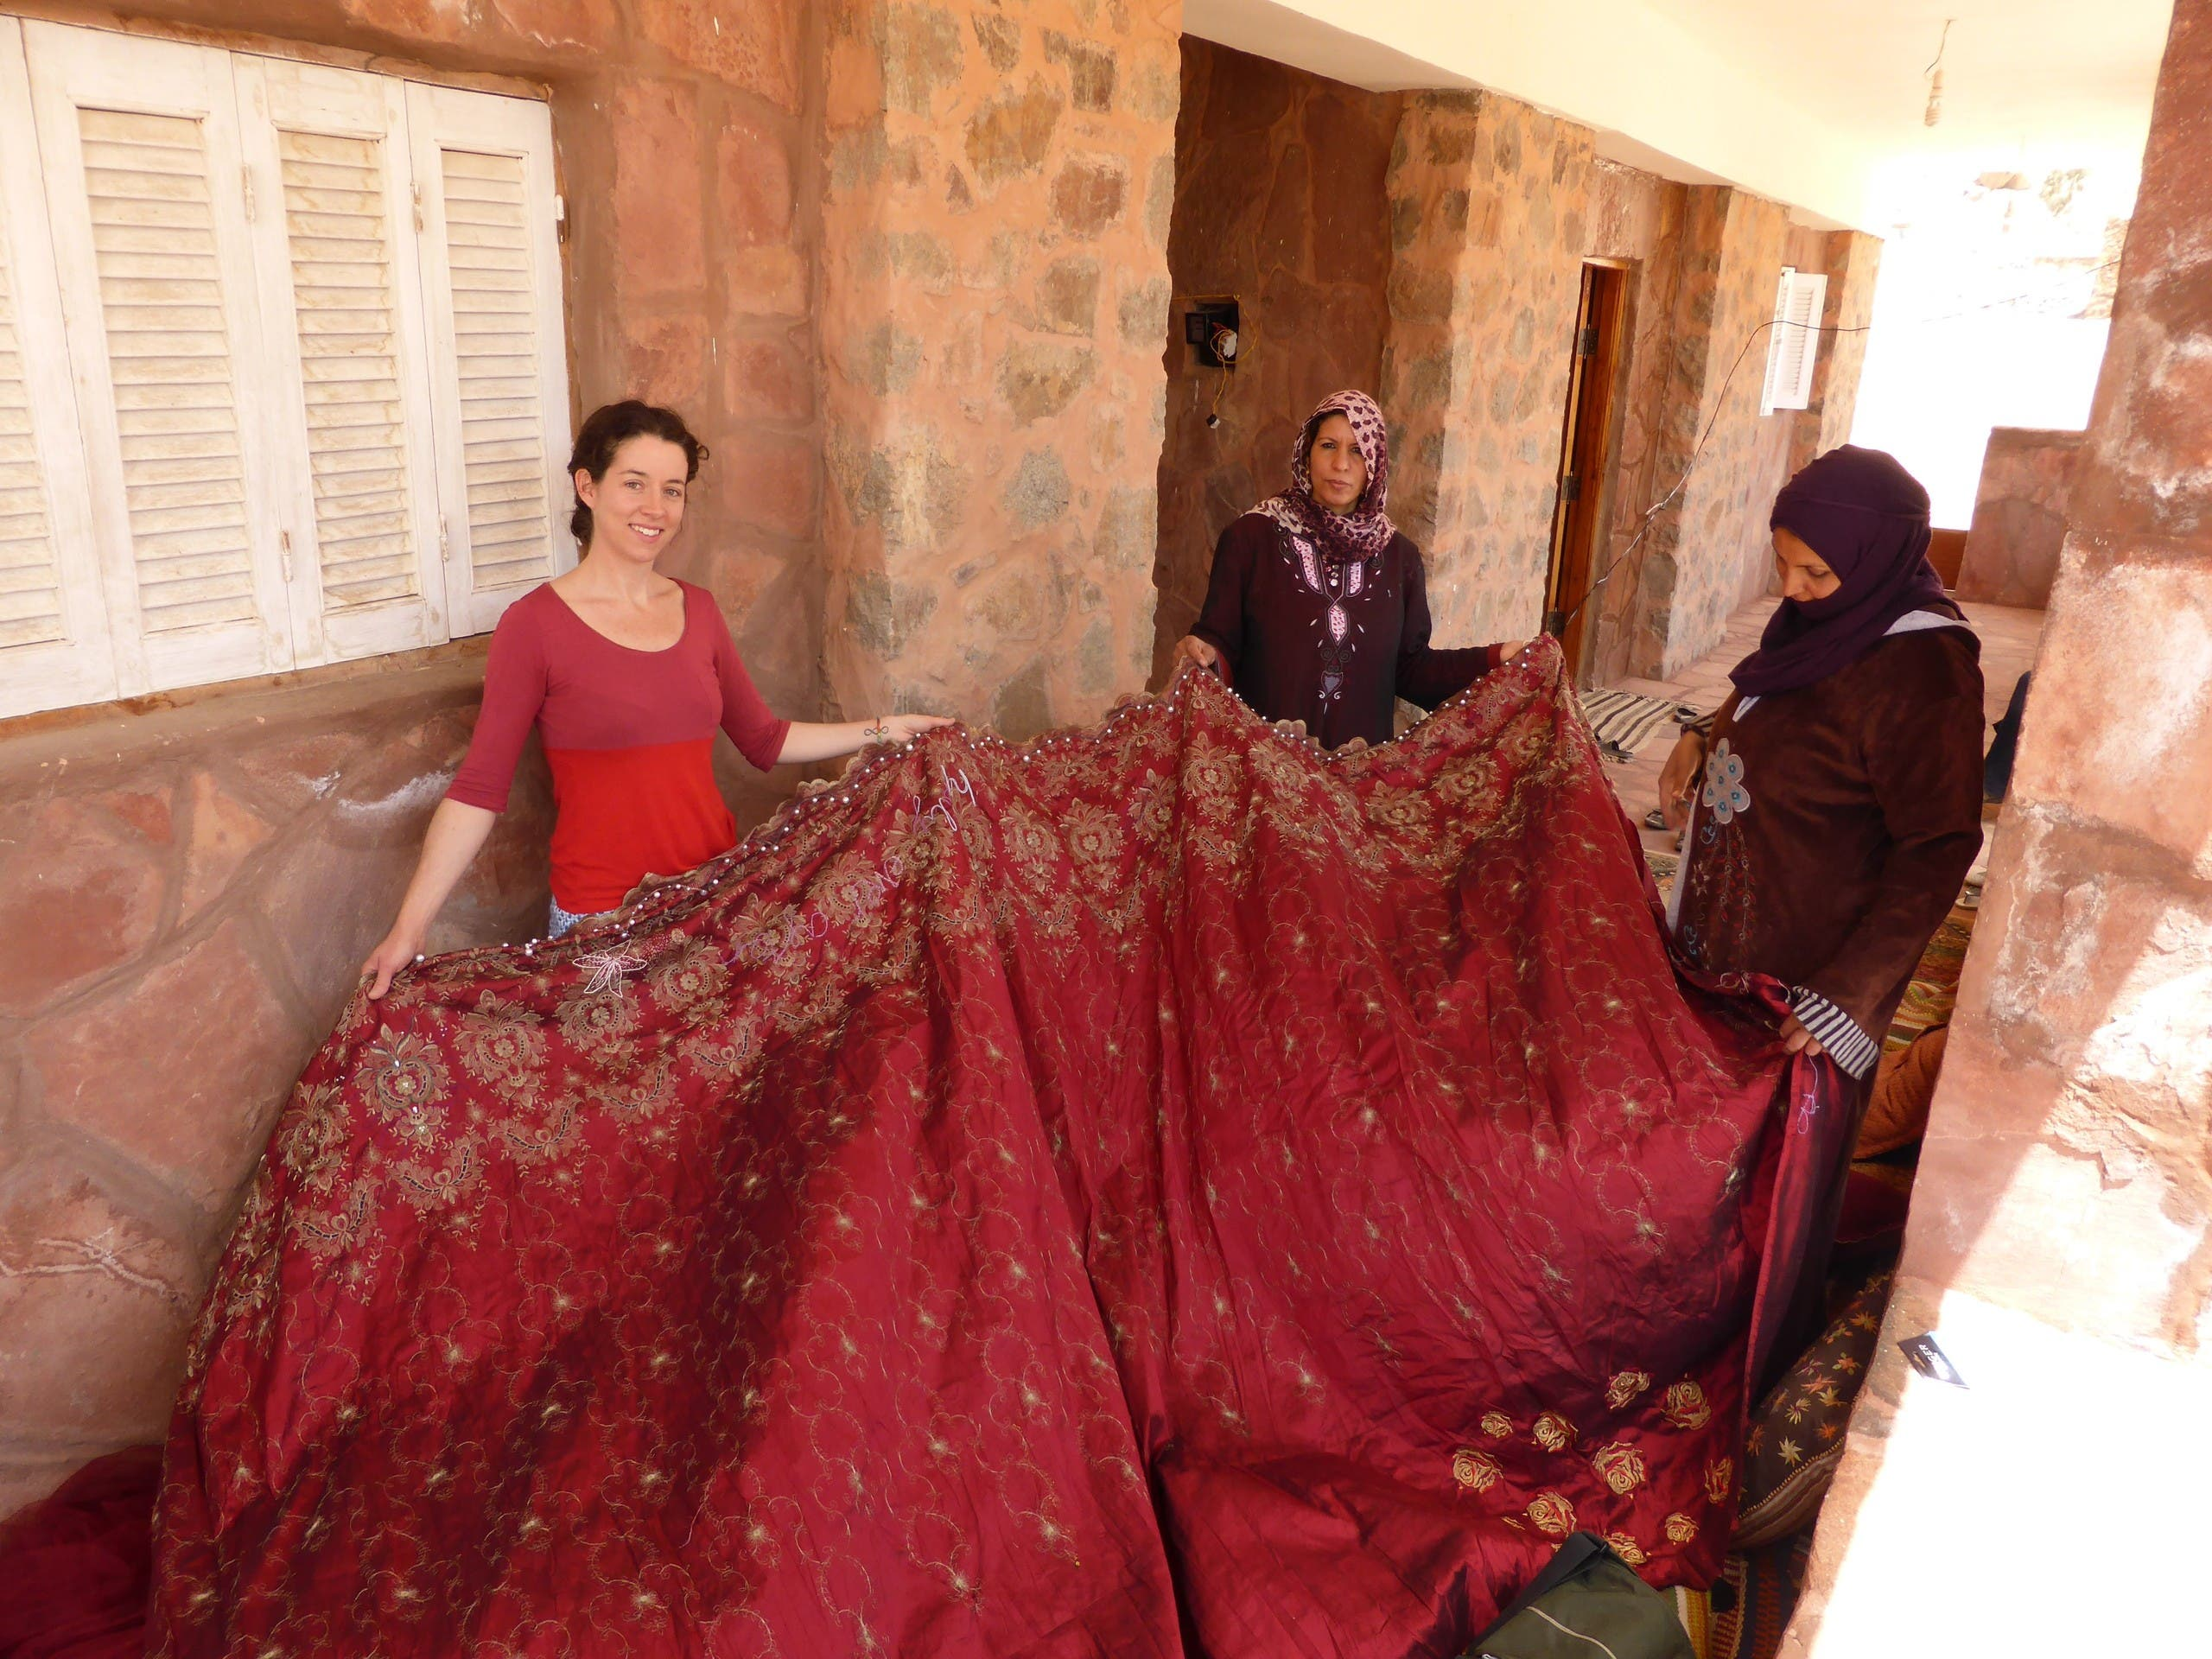 Kirstie Macleod (left) and Selema Gebaly (middle) looking at the material to be embroidered, in Saint Catherine, Sinai, Egypt. (Supplied: Kirstie Macleod)